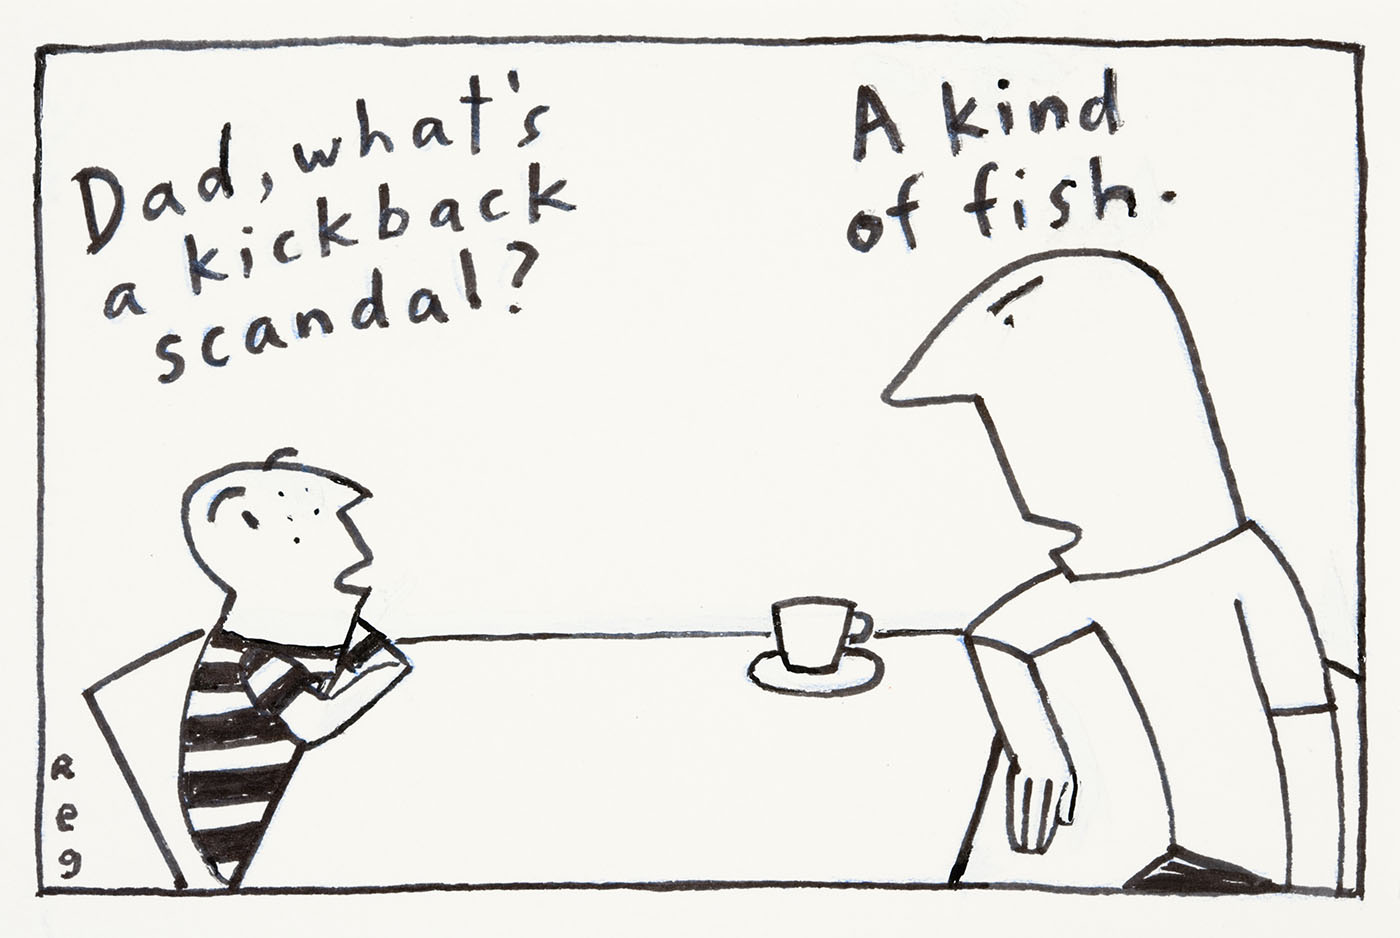 Cartoon of a father explaining to his son that a kickback scandal is a kind of fish - click to view larger image